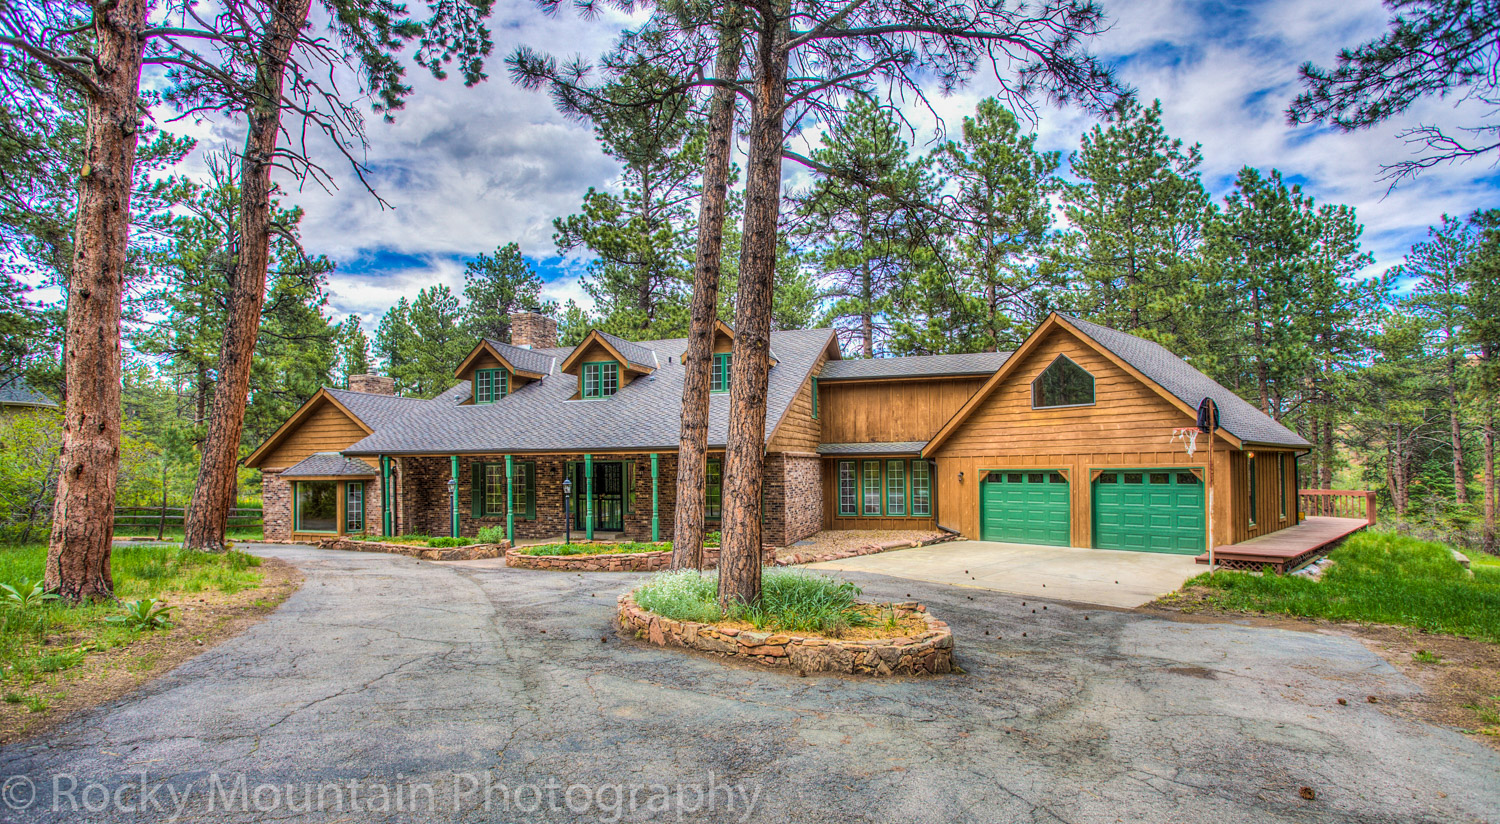 Residential Real Estate HDR Exterior-13